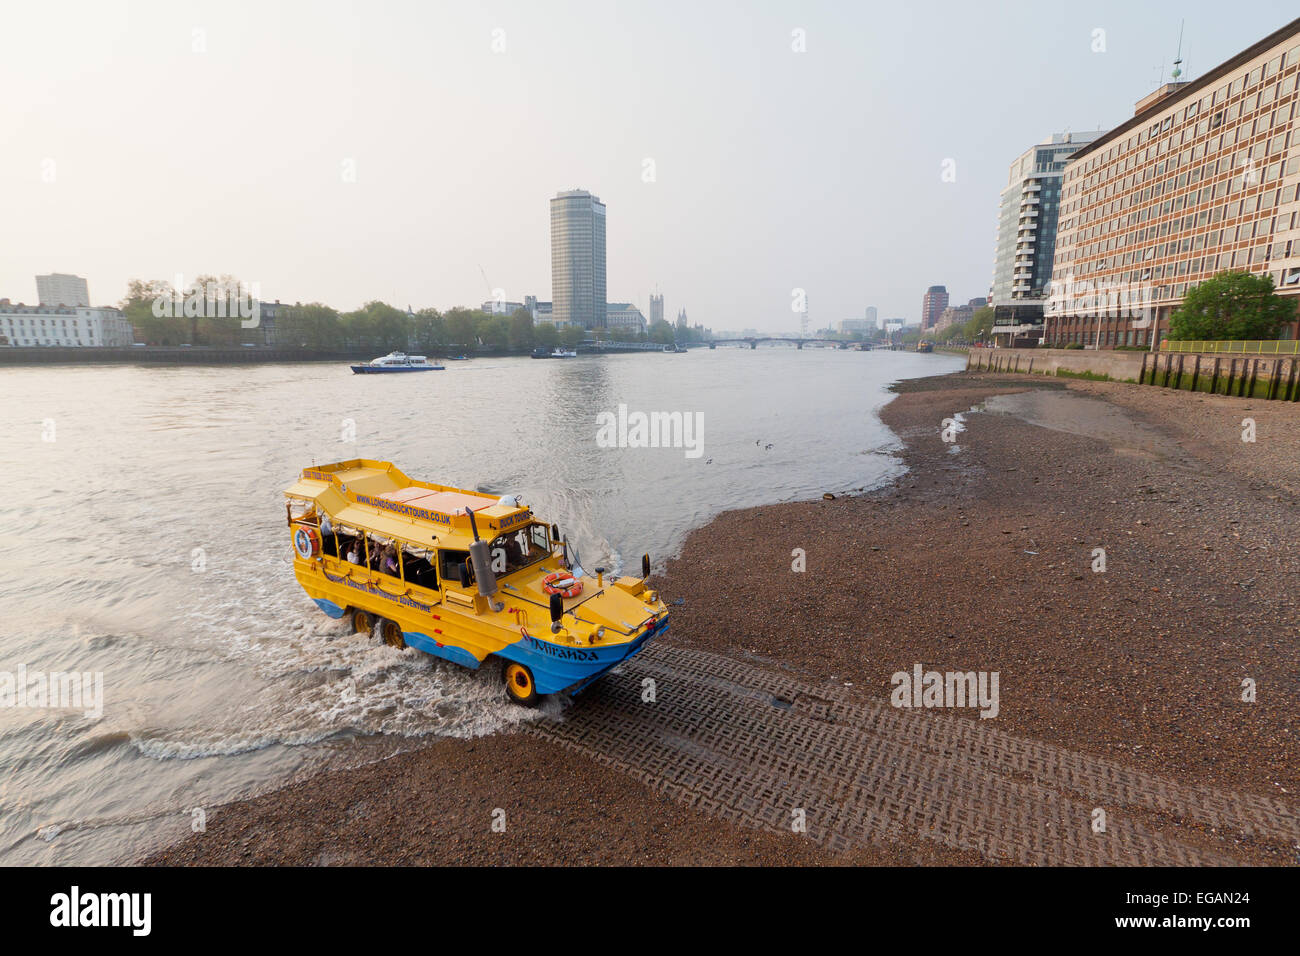 Duck Tours amphibious craft comes ashore at Vauxhall, London, England - Stock Image